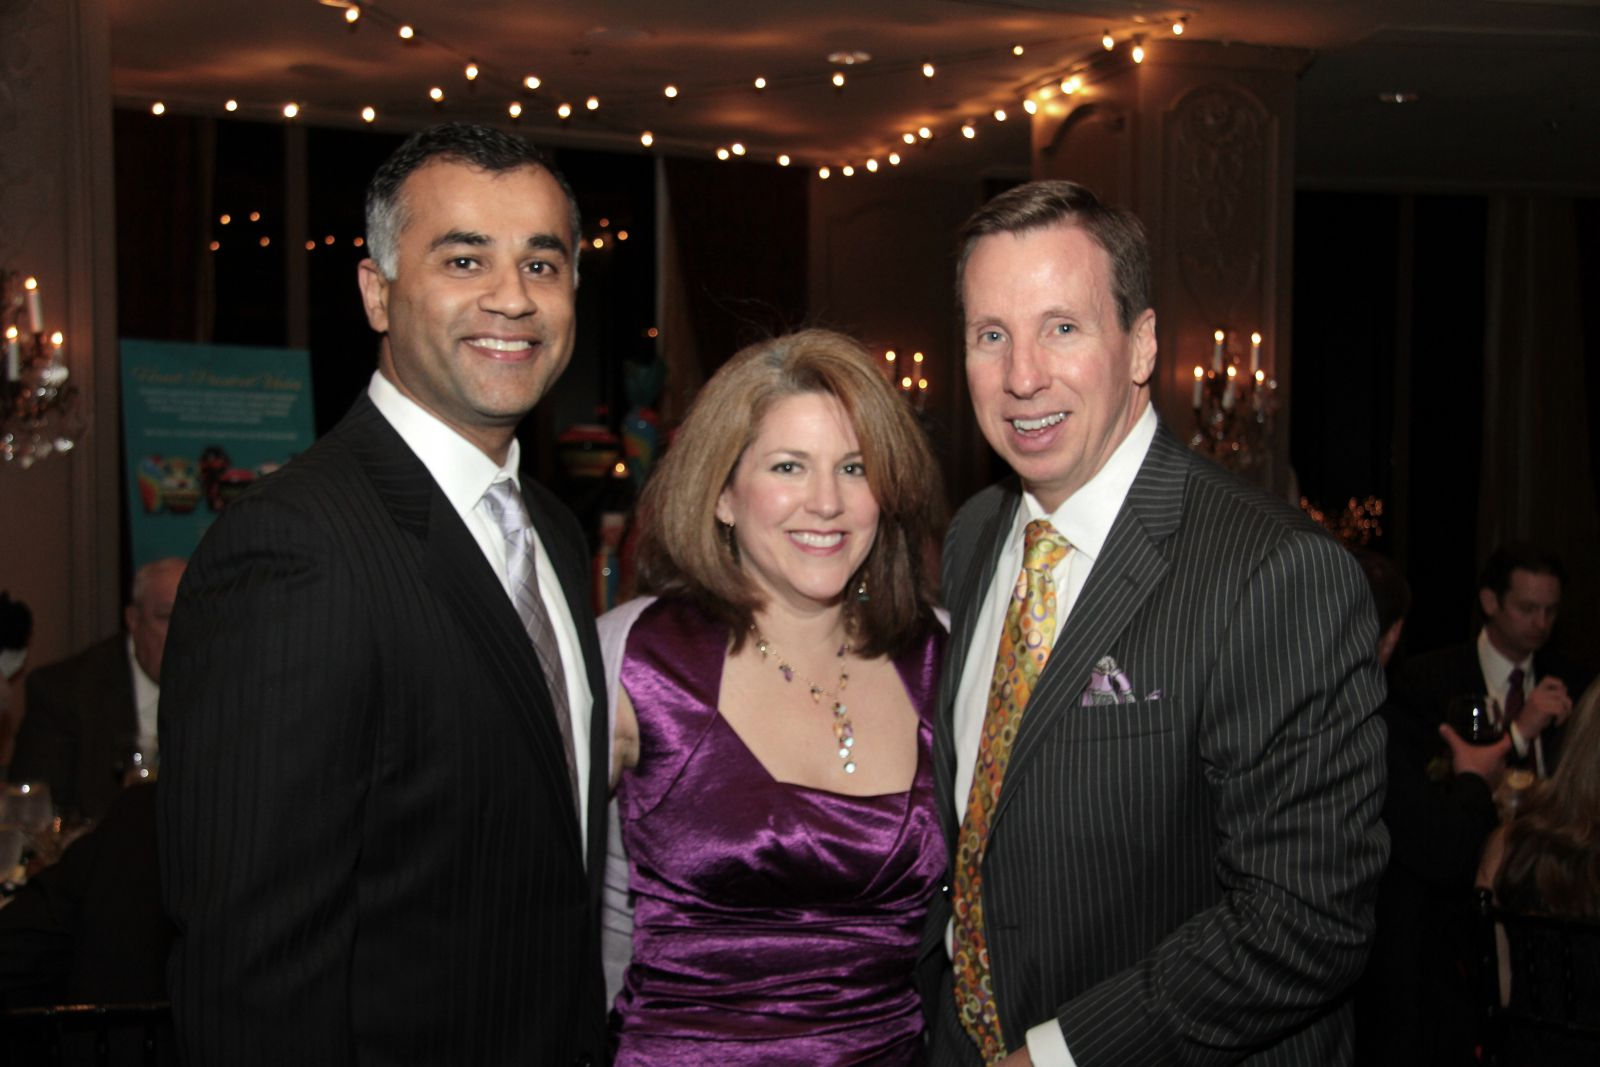 Mush Khan, Stacey Wood, Trey Wood